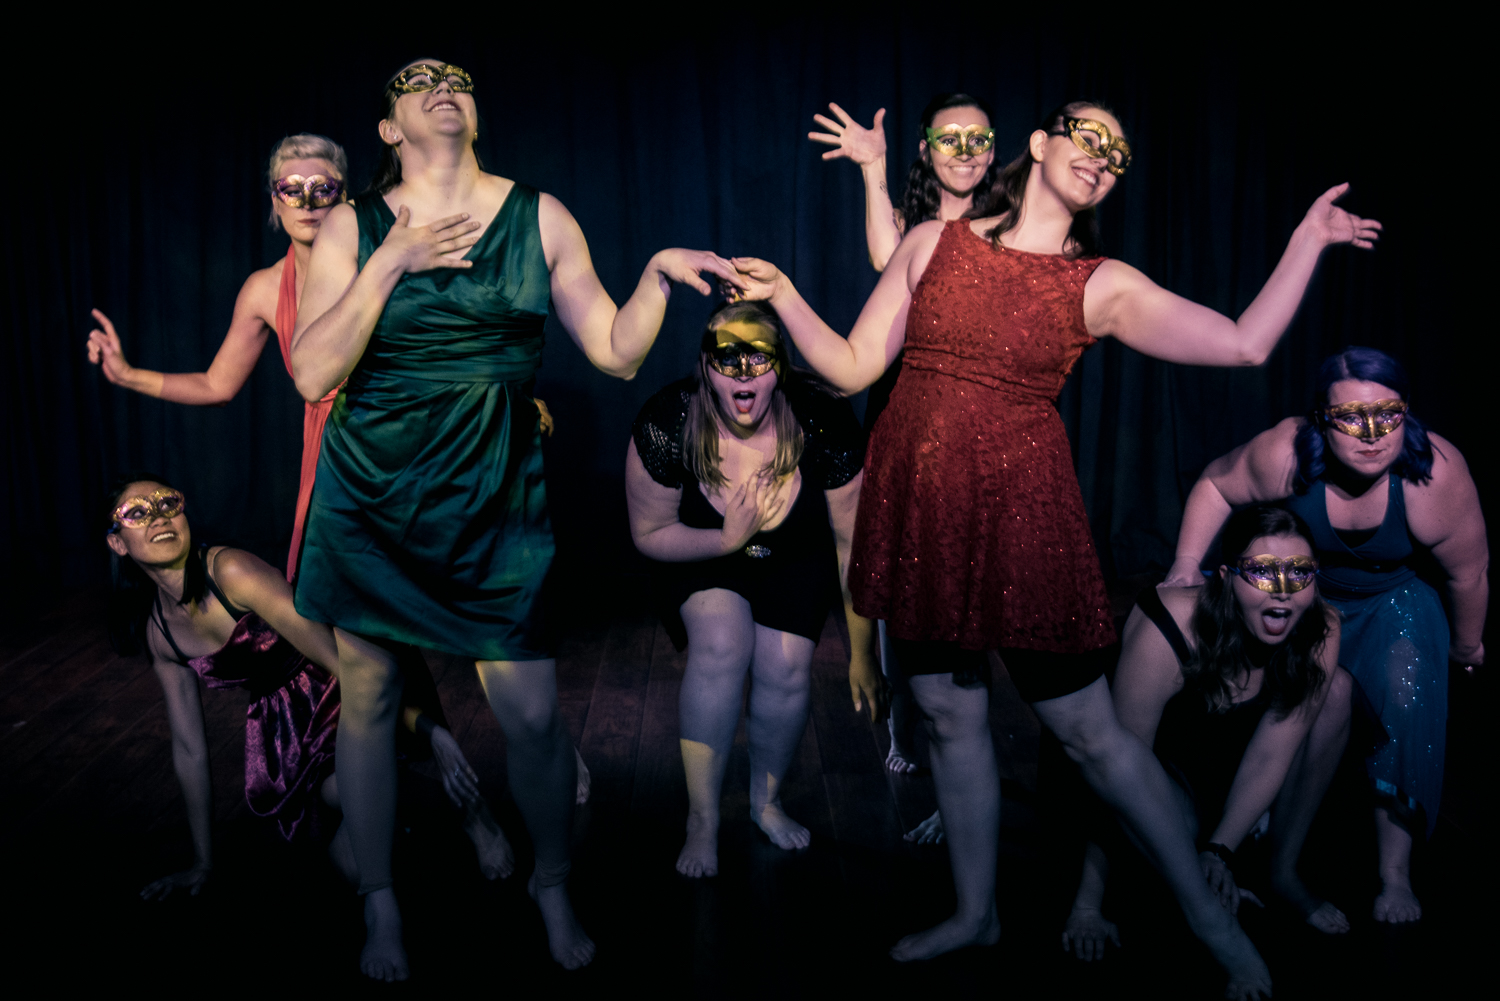 """Unmasked"", Choreographed by: Annalise Hummerland Dancers (front left to right): Alisa Lindsay, Laura Yeomans, Bethany Gravert, Alyssa Ferguson, Amber Casillas, Andrea Nightengale, Mary Wolter, and Nicole Byndas Photography: Jon Clay Photography"